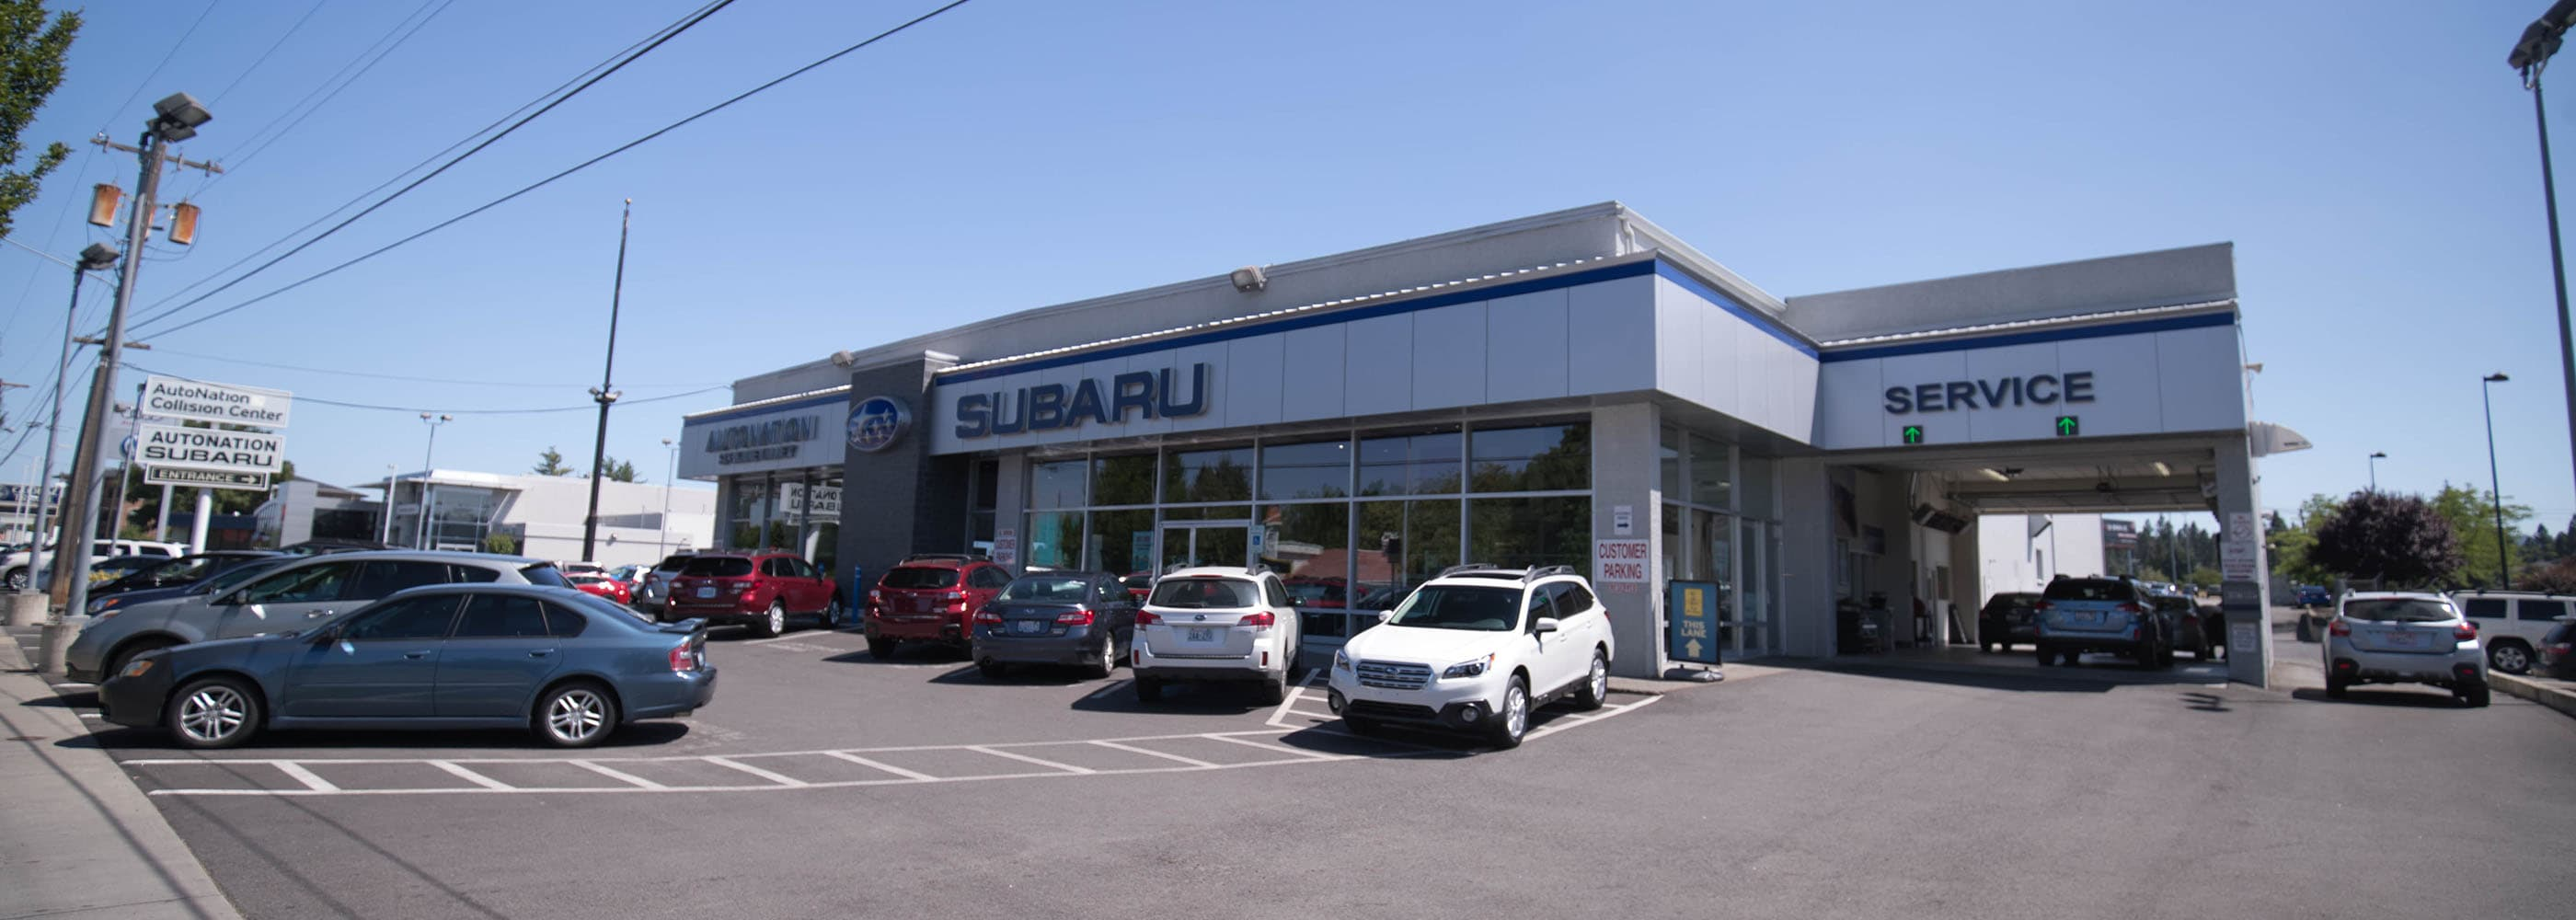 Autonation Subaru Dealer >> Spokane Valley Subaru Dealer Autonation Subaru Spokane Valley